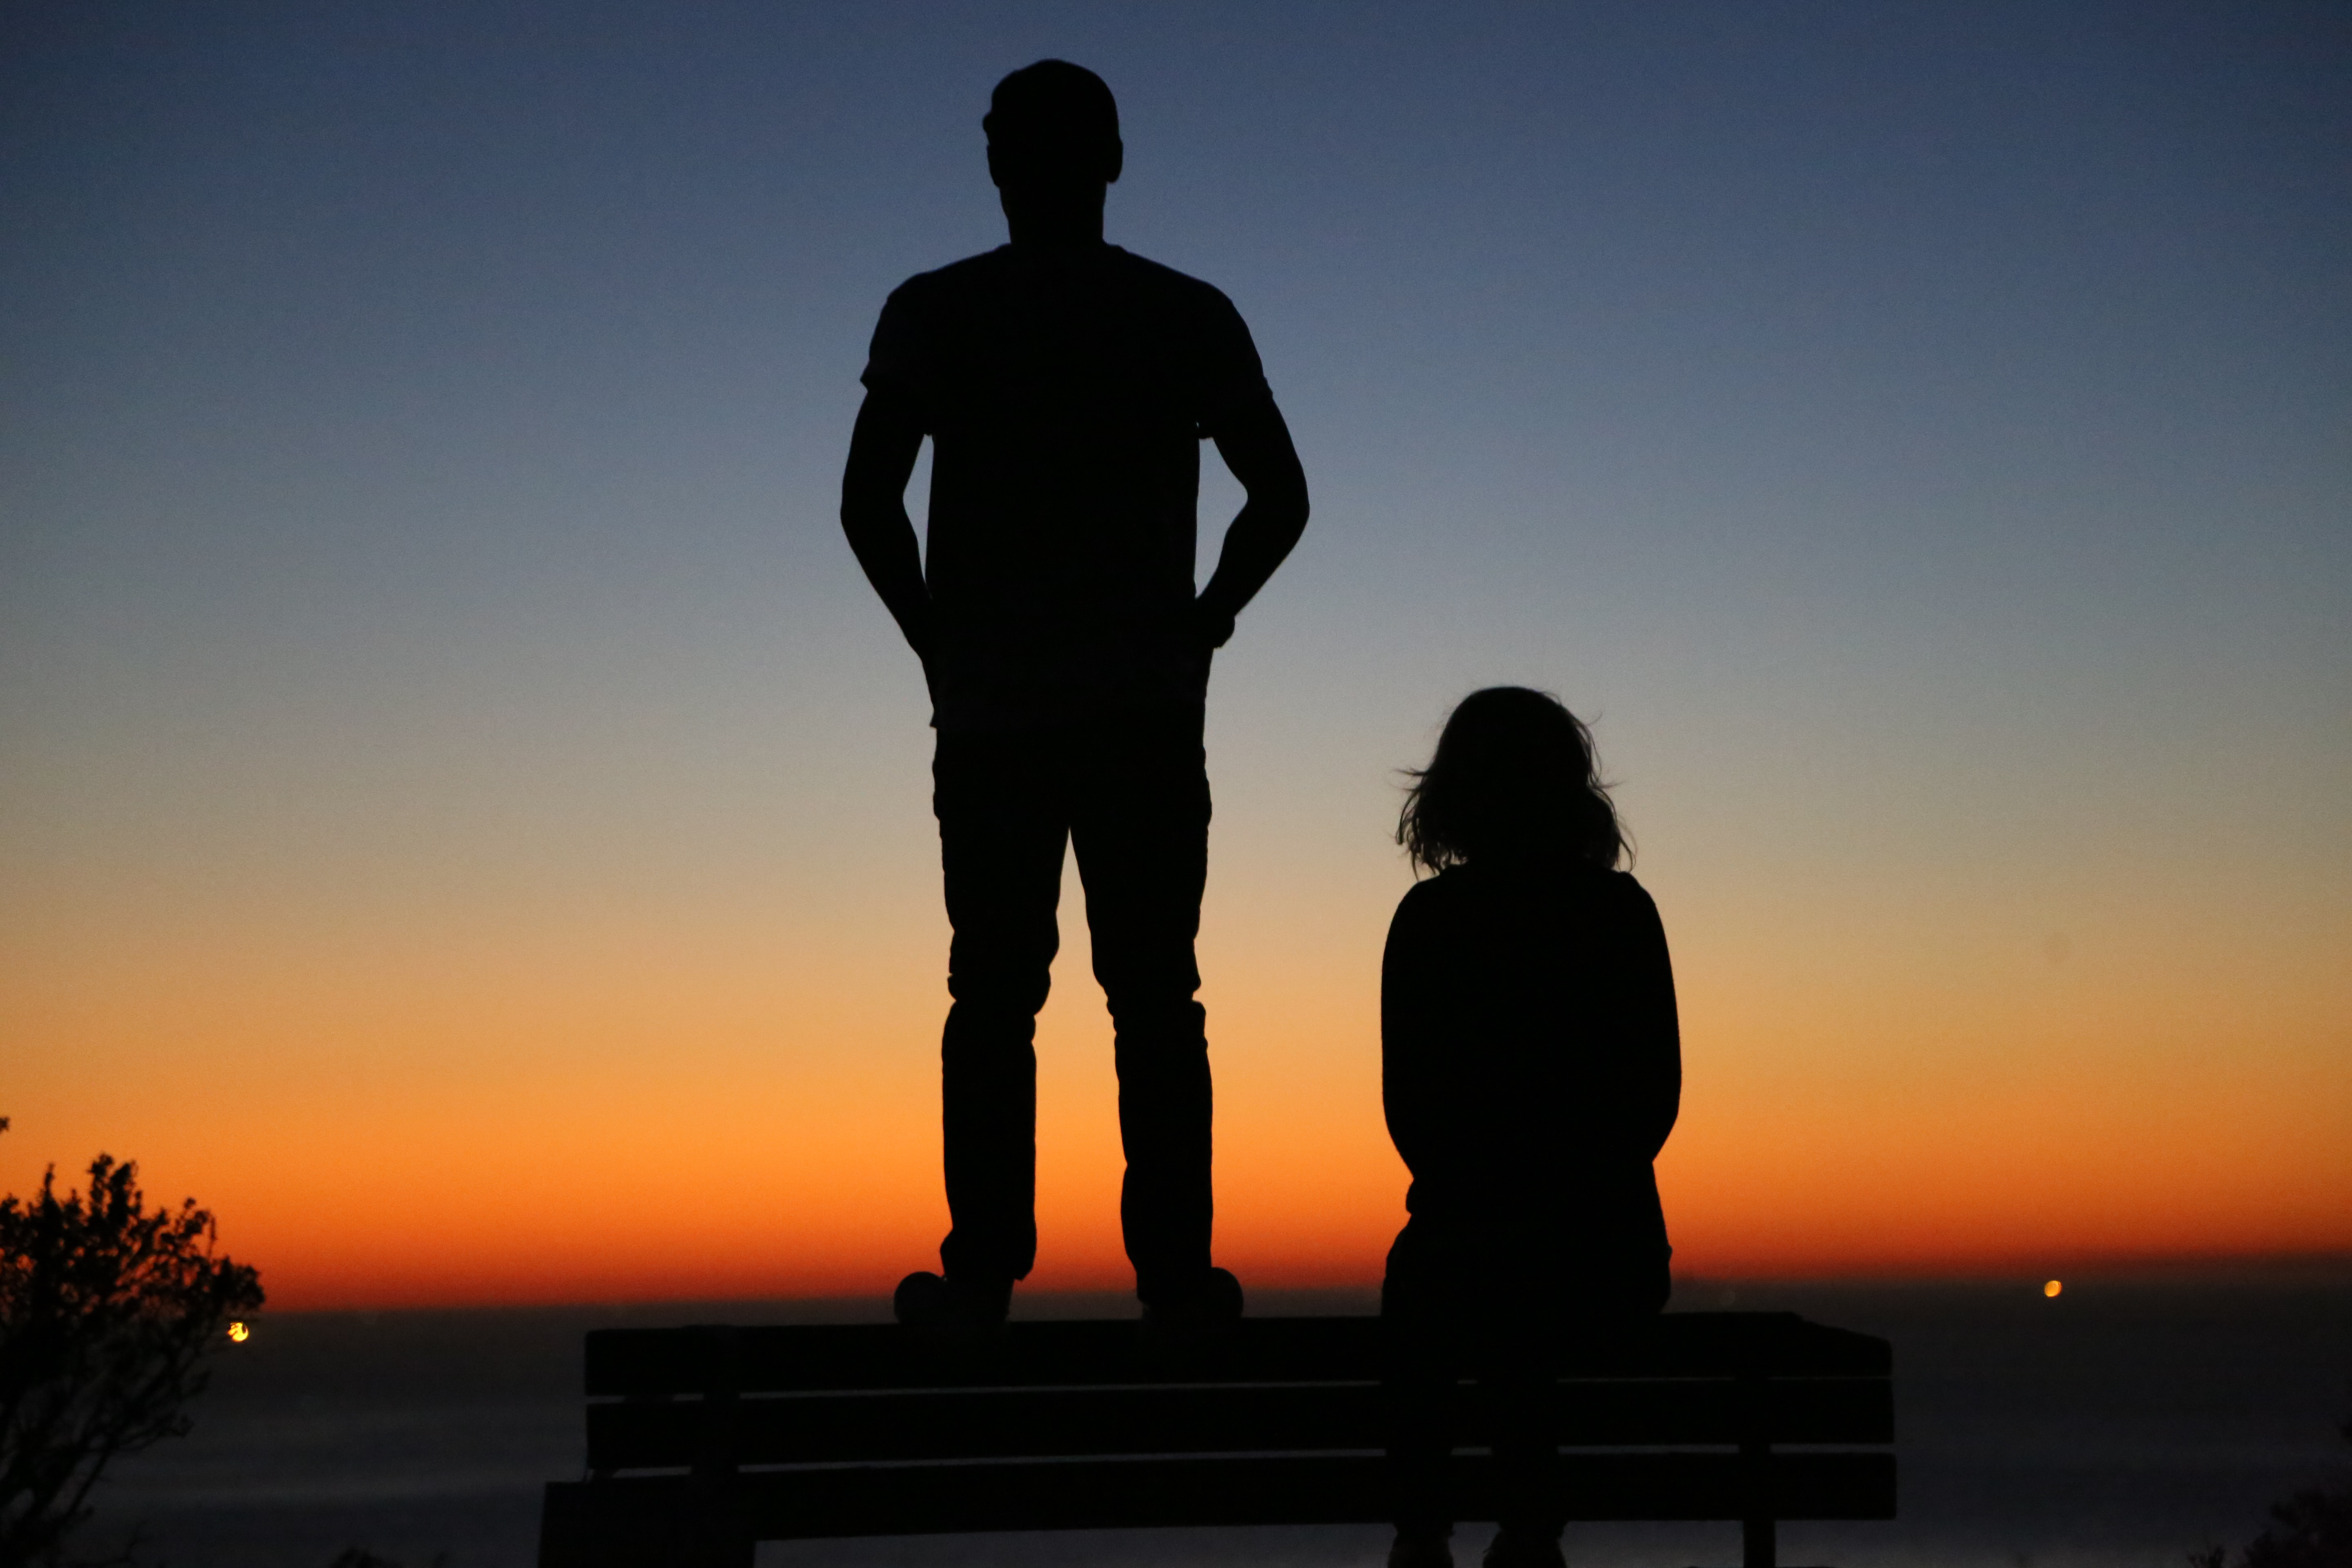 silhouette of an standing man and sitting woman on bench